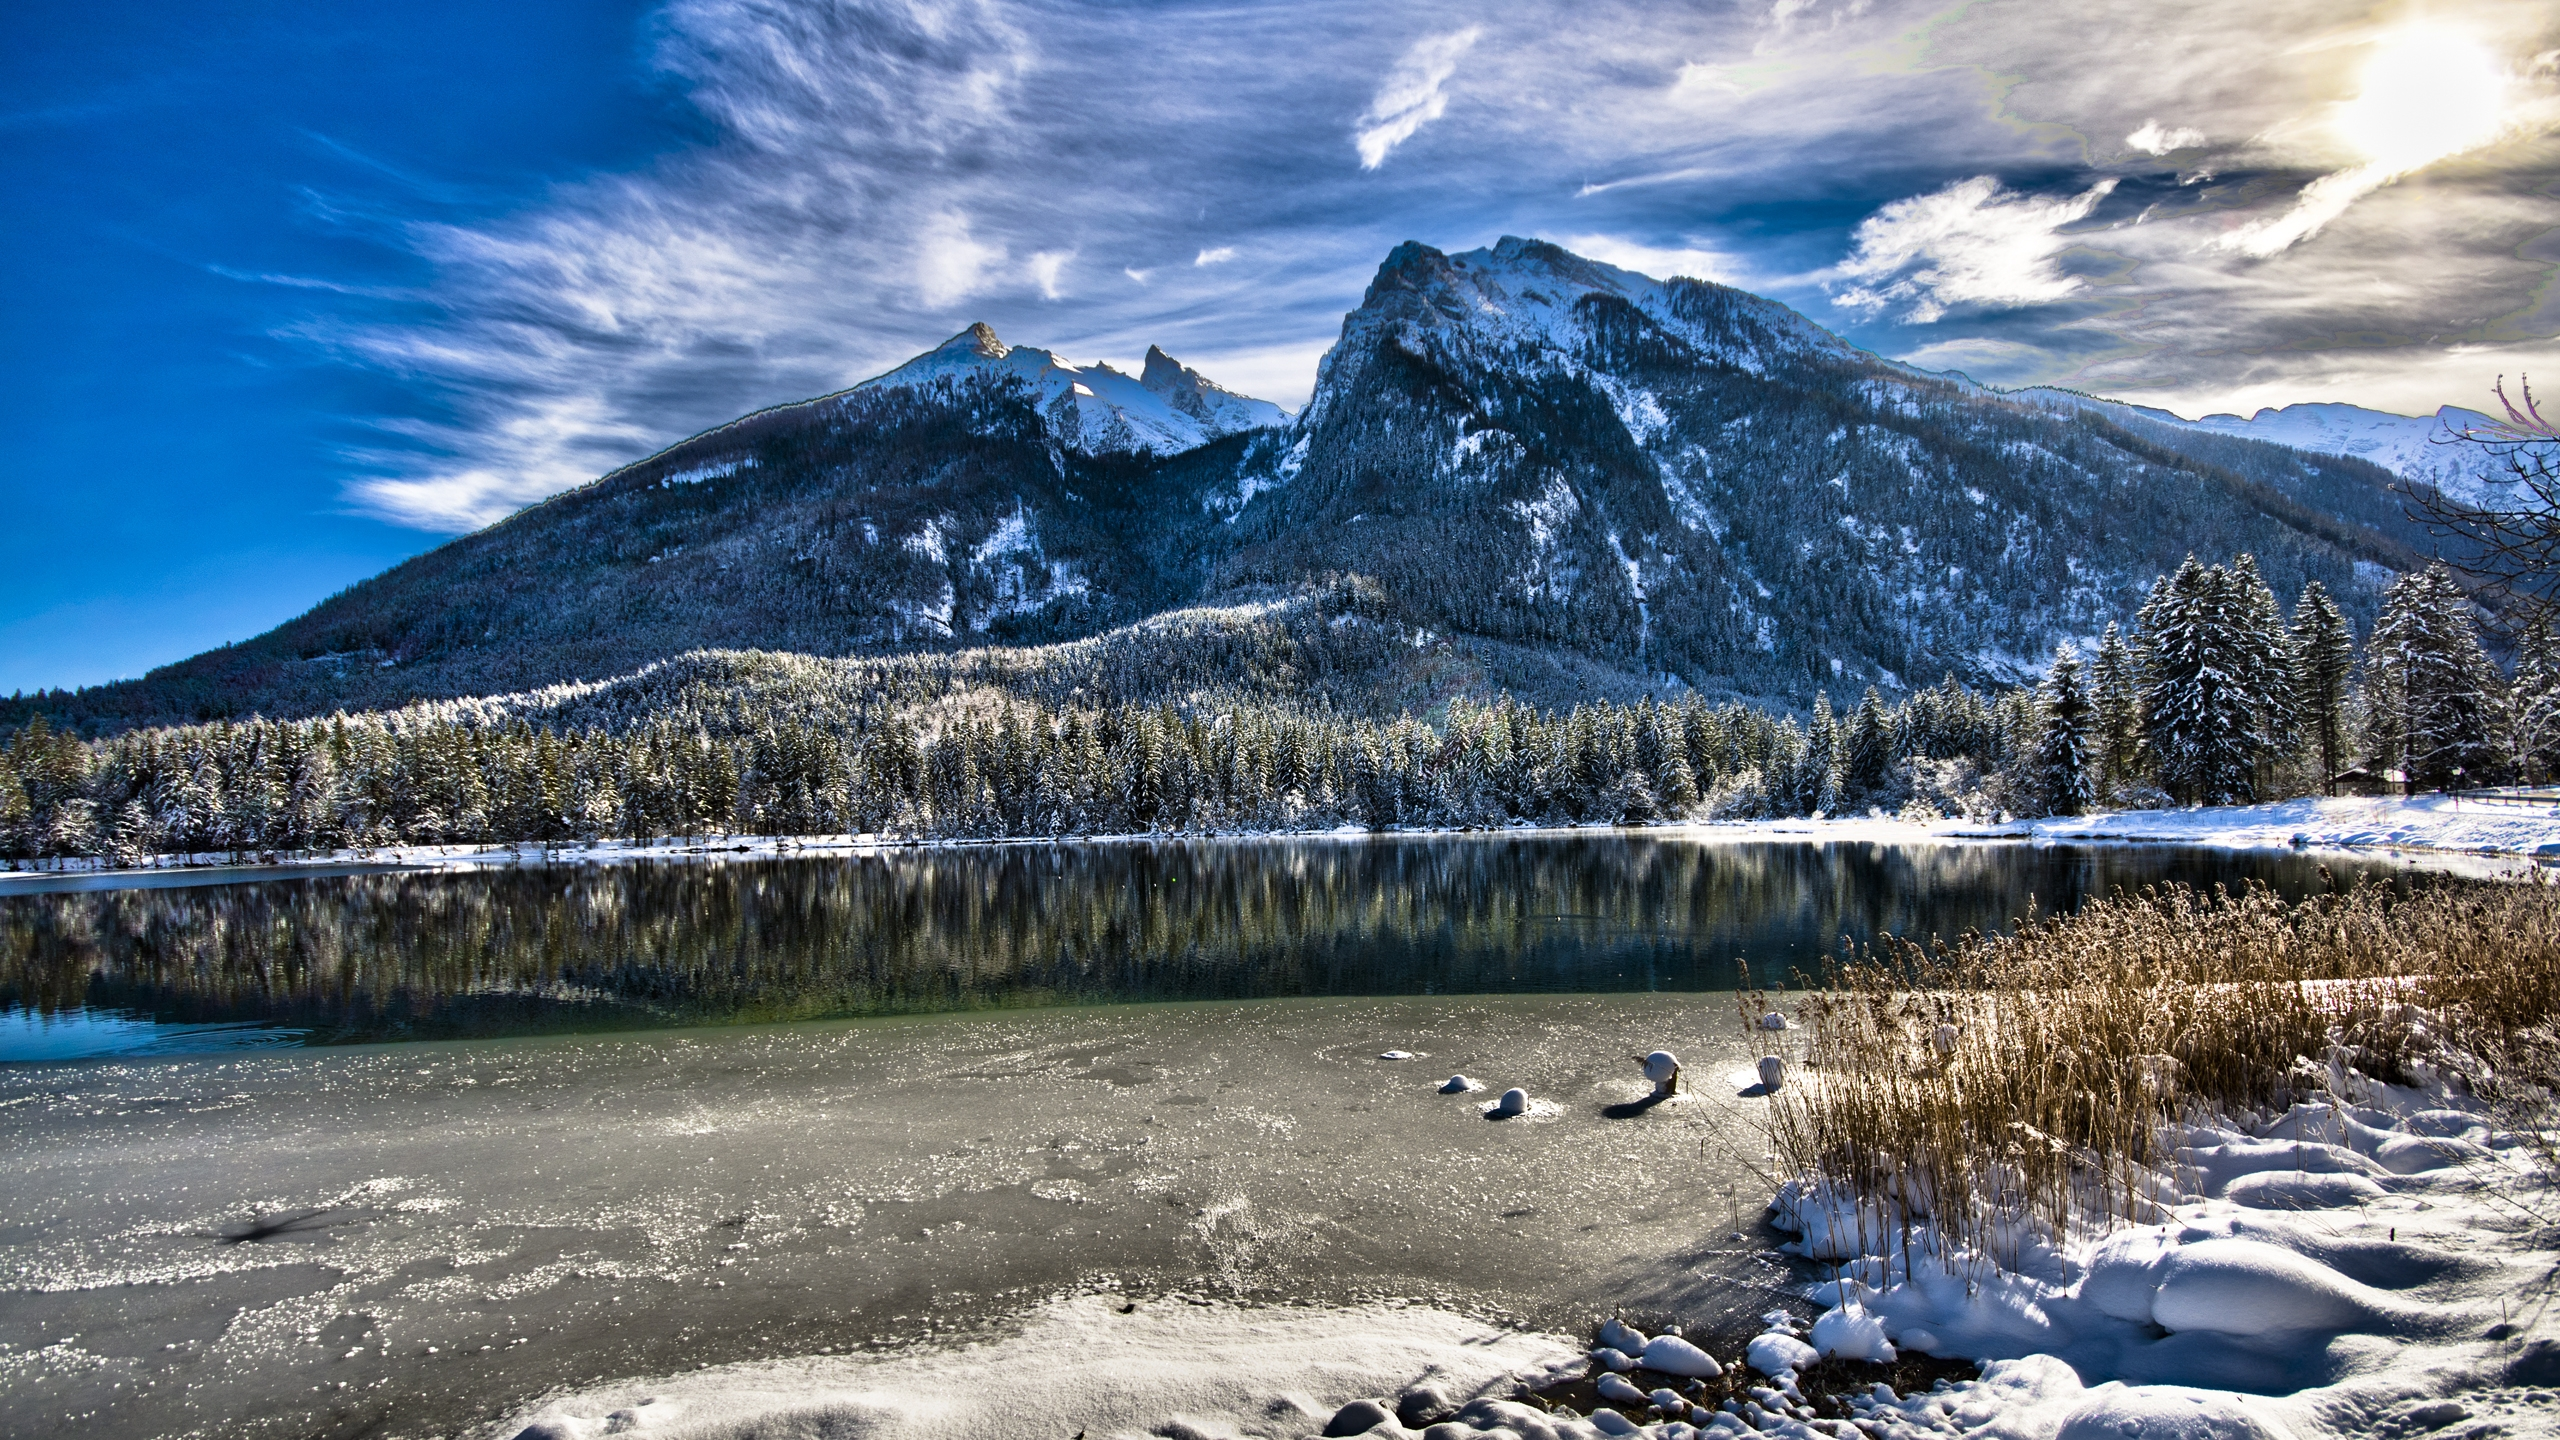 Winter Mountains High Quality Wallpapers